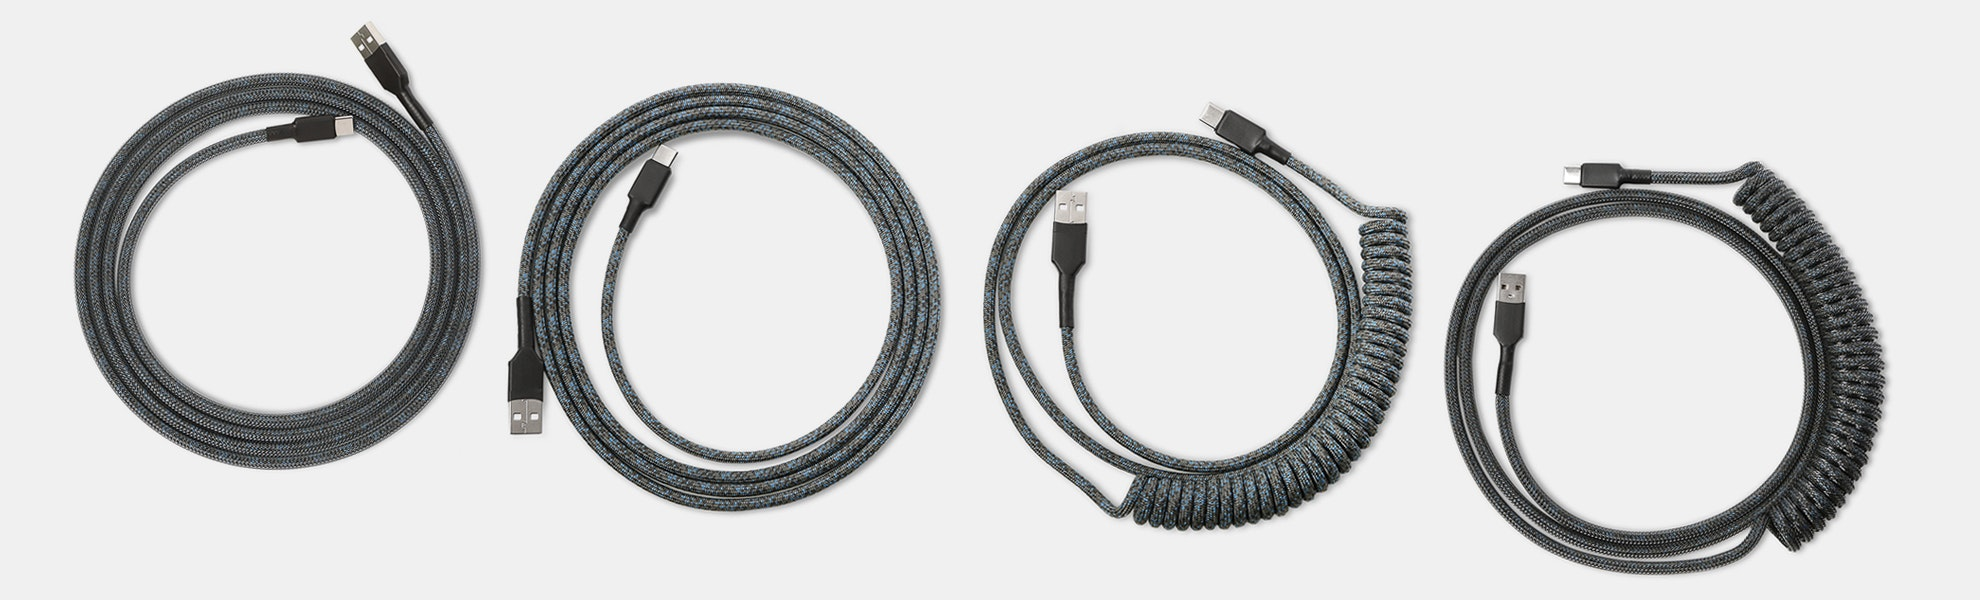 Mechcables Sky Dolch Custom-Sleeved USB Cable